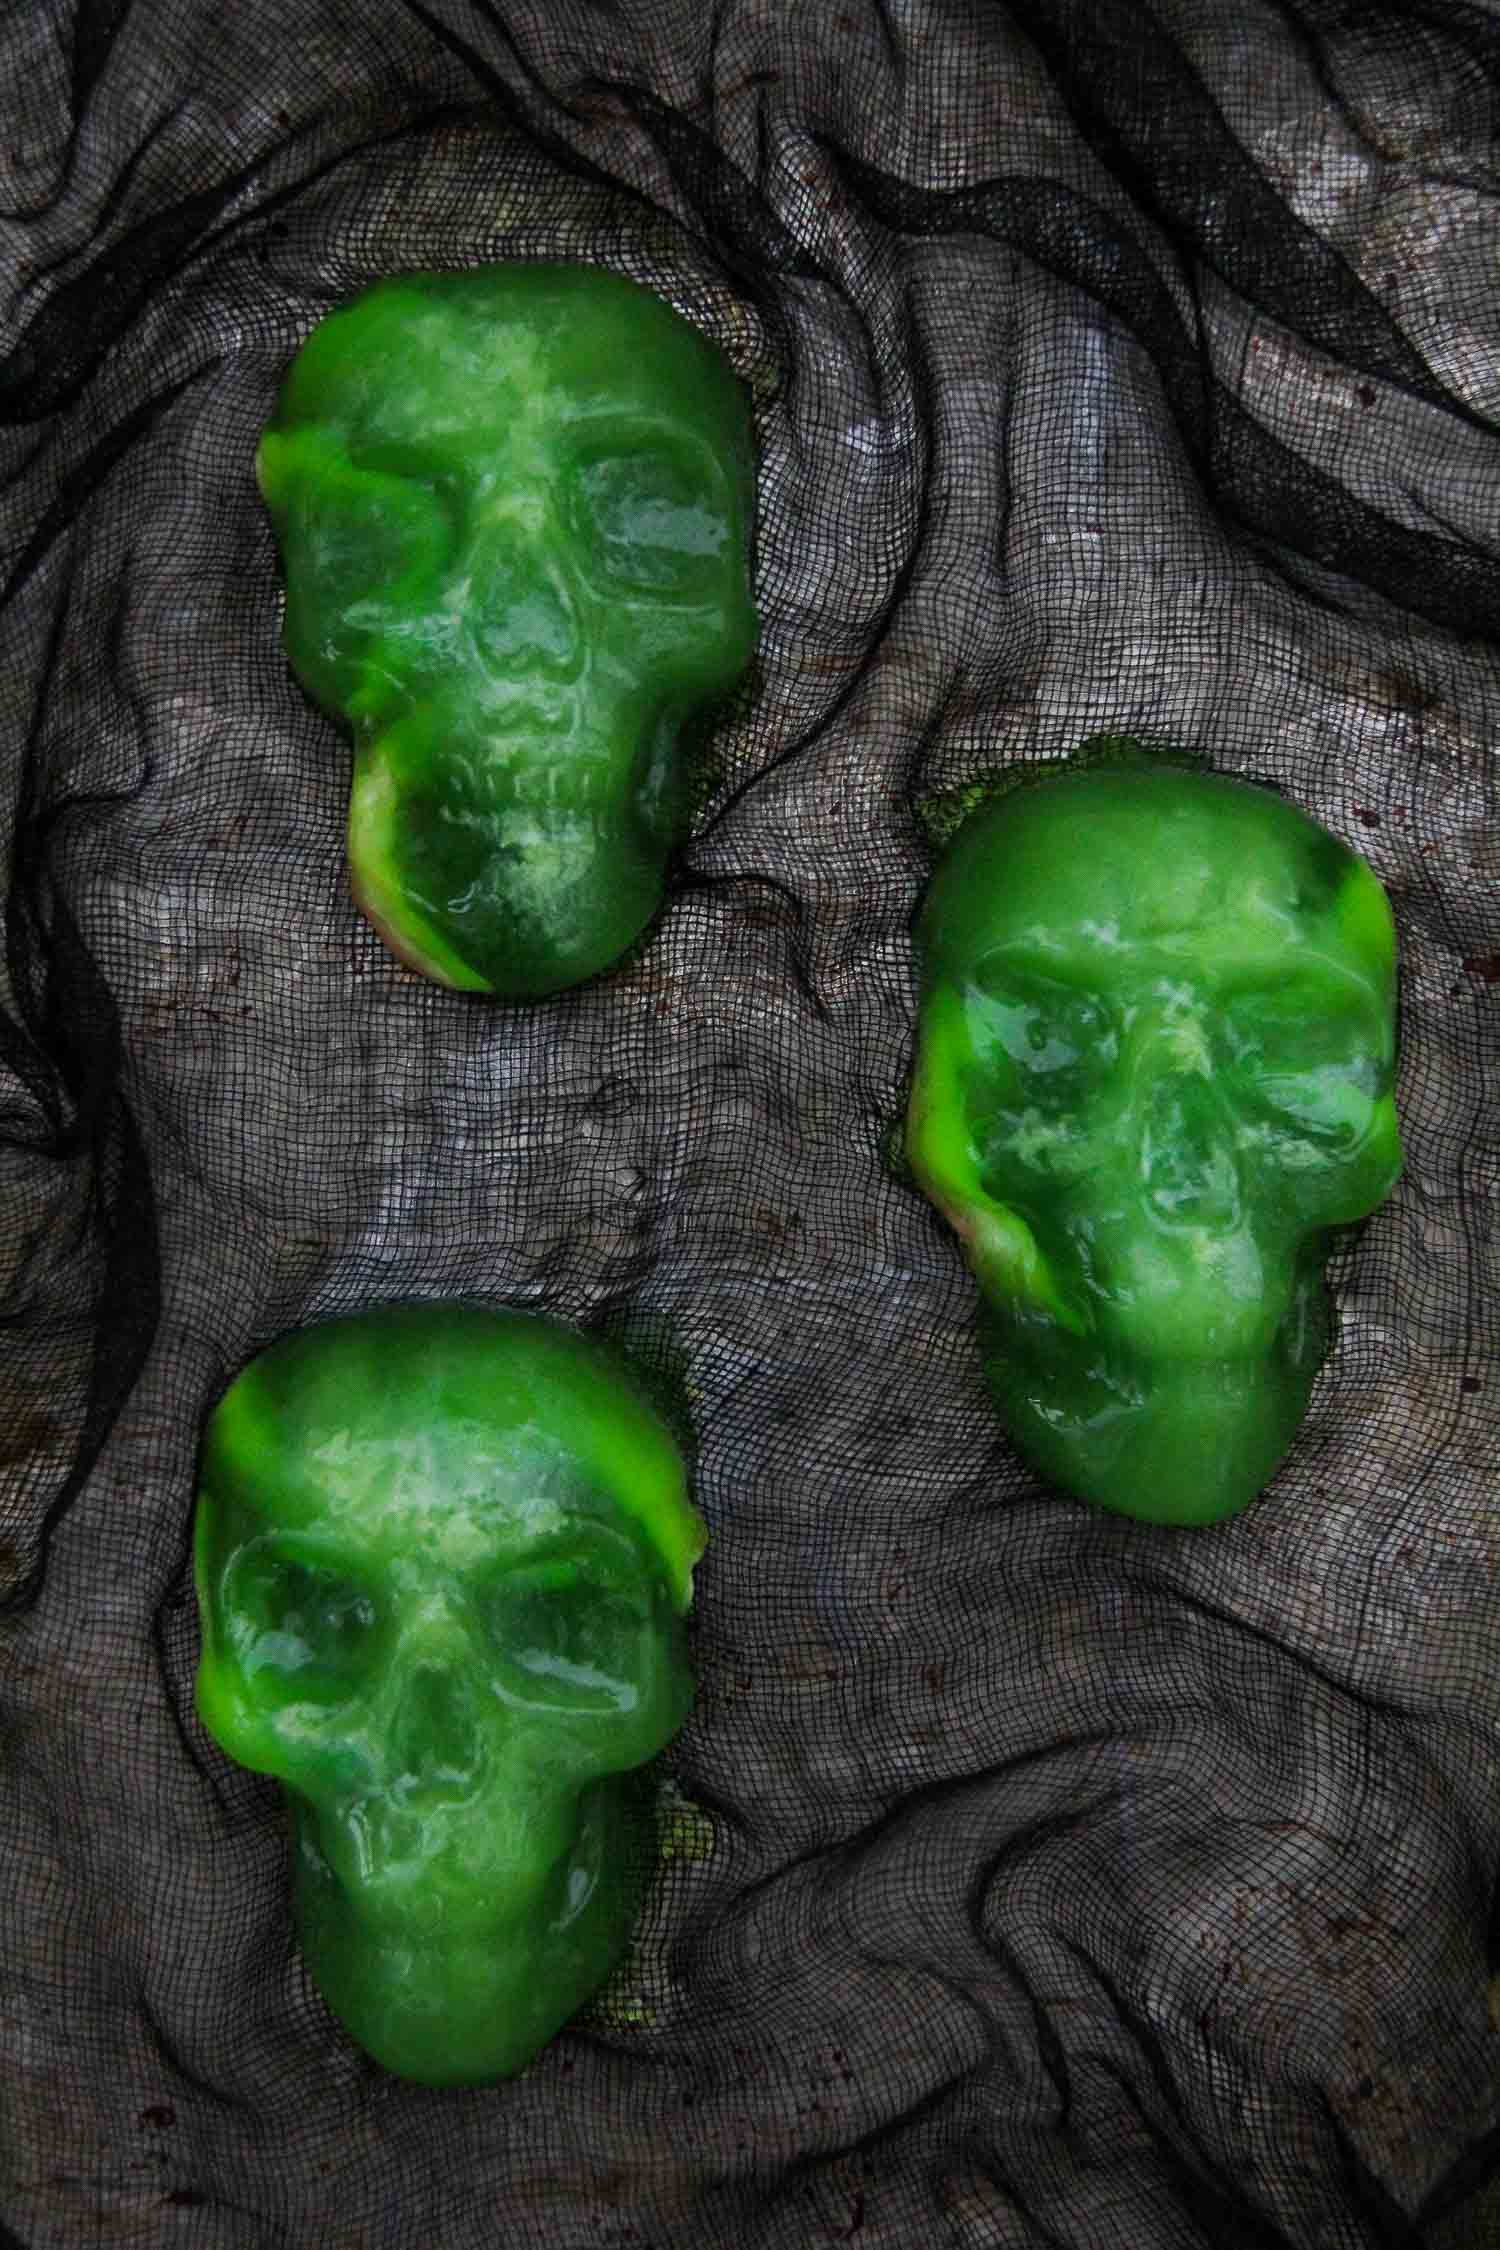 Spooky Halloween Food Ideas: Halloween Jello Skulls with Gummy Candy Worms